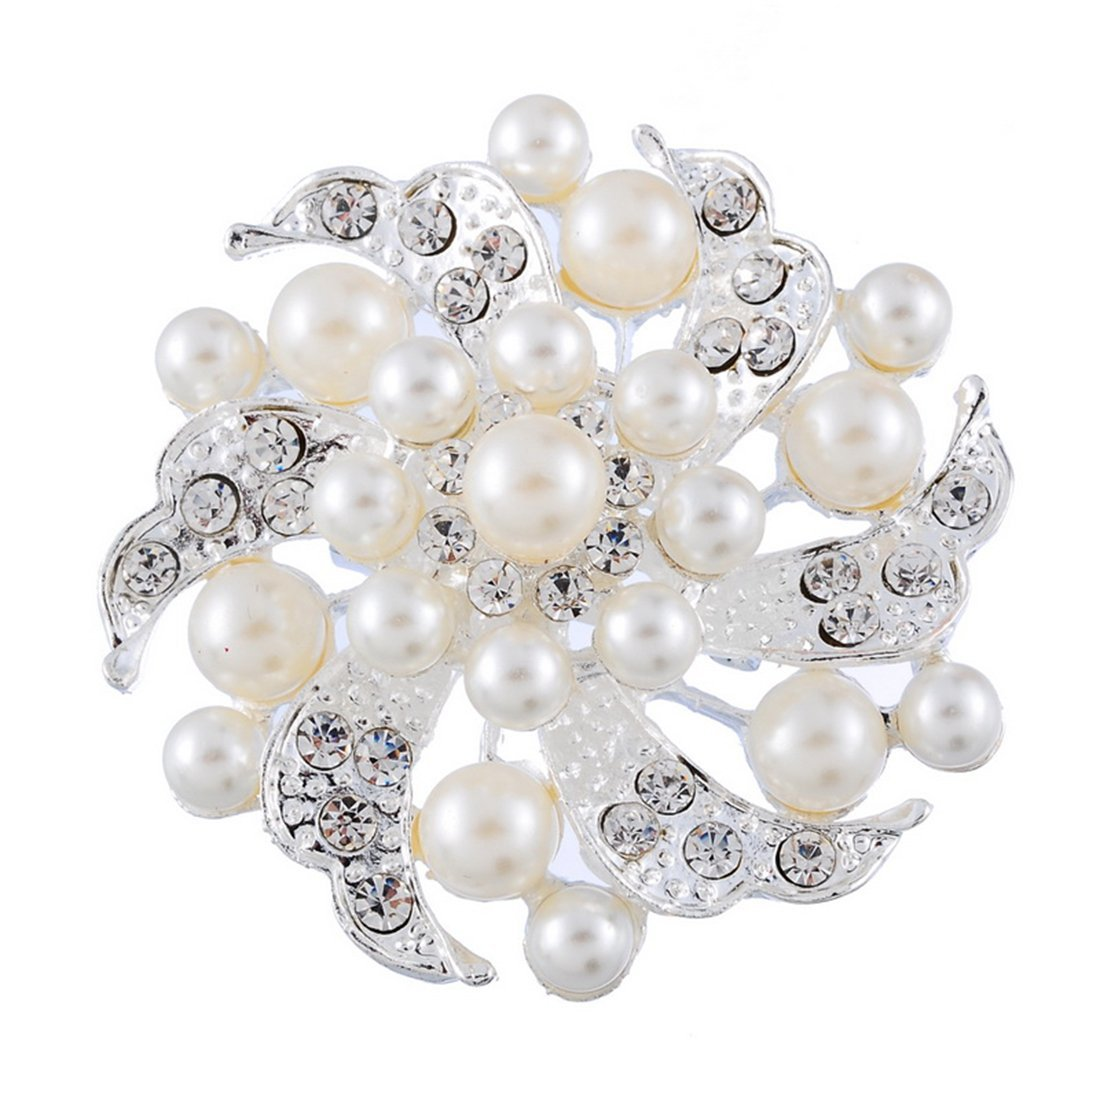 Souarts Womens Silver Tone Color Hollow Flower Brooch Pin with Artificial Pearl